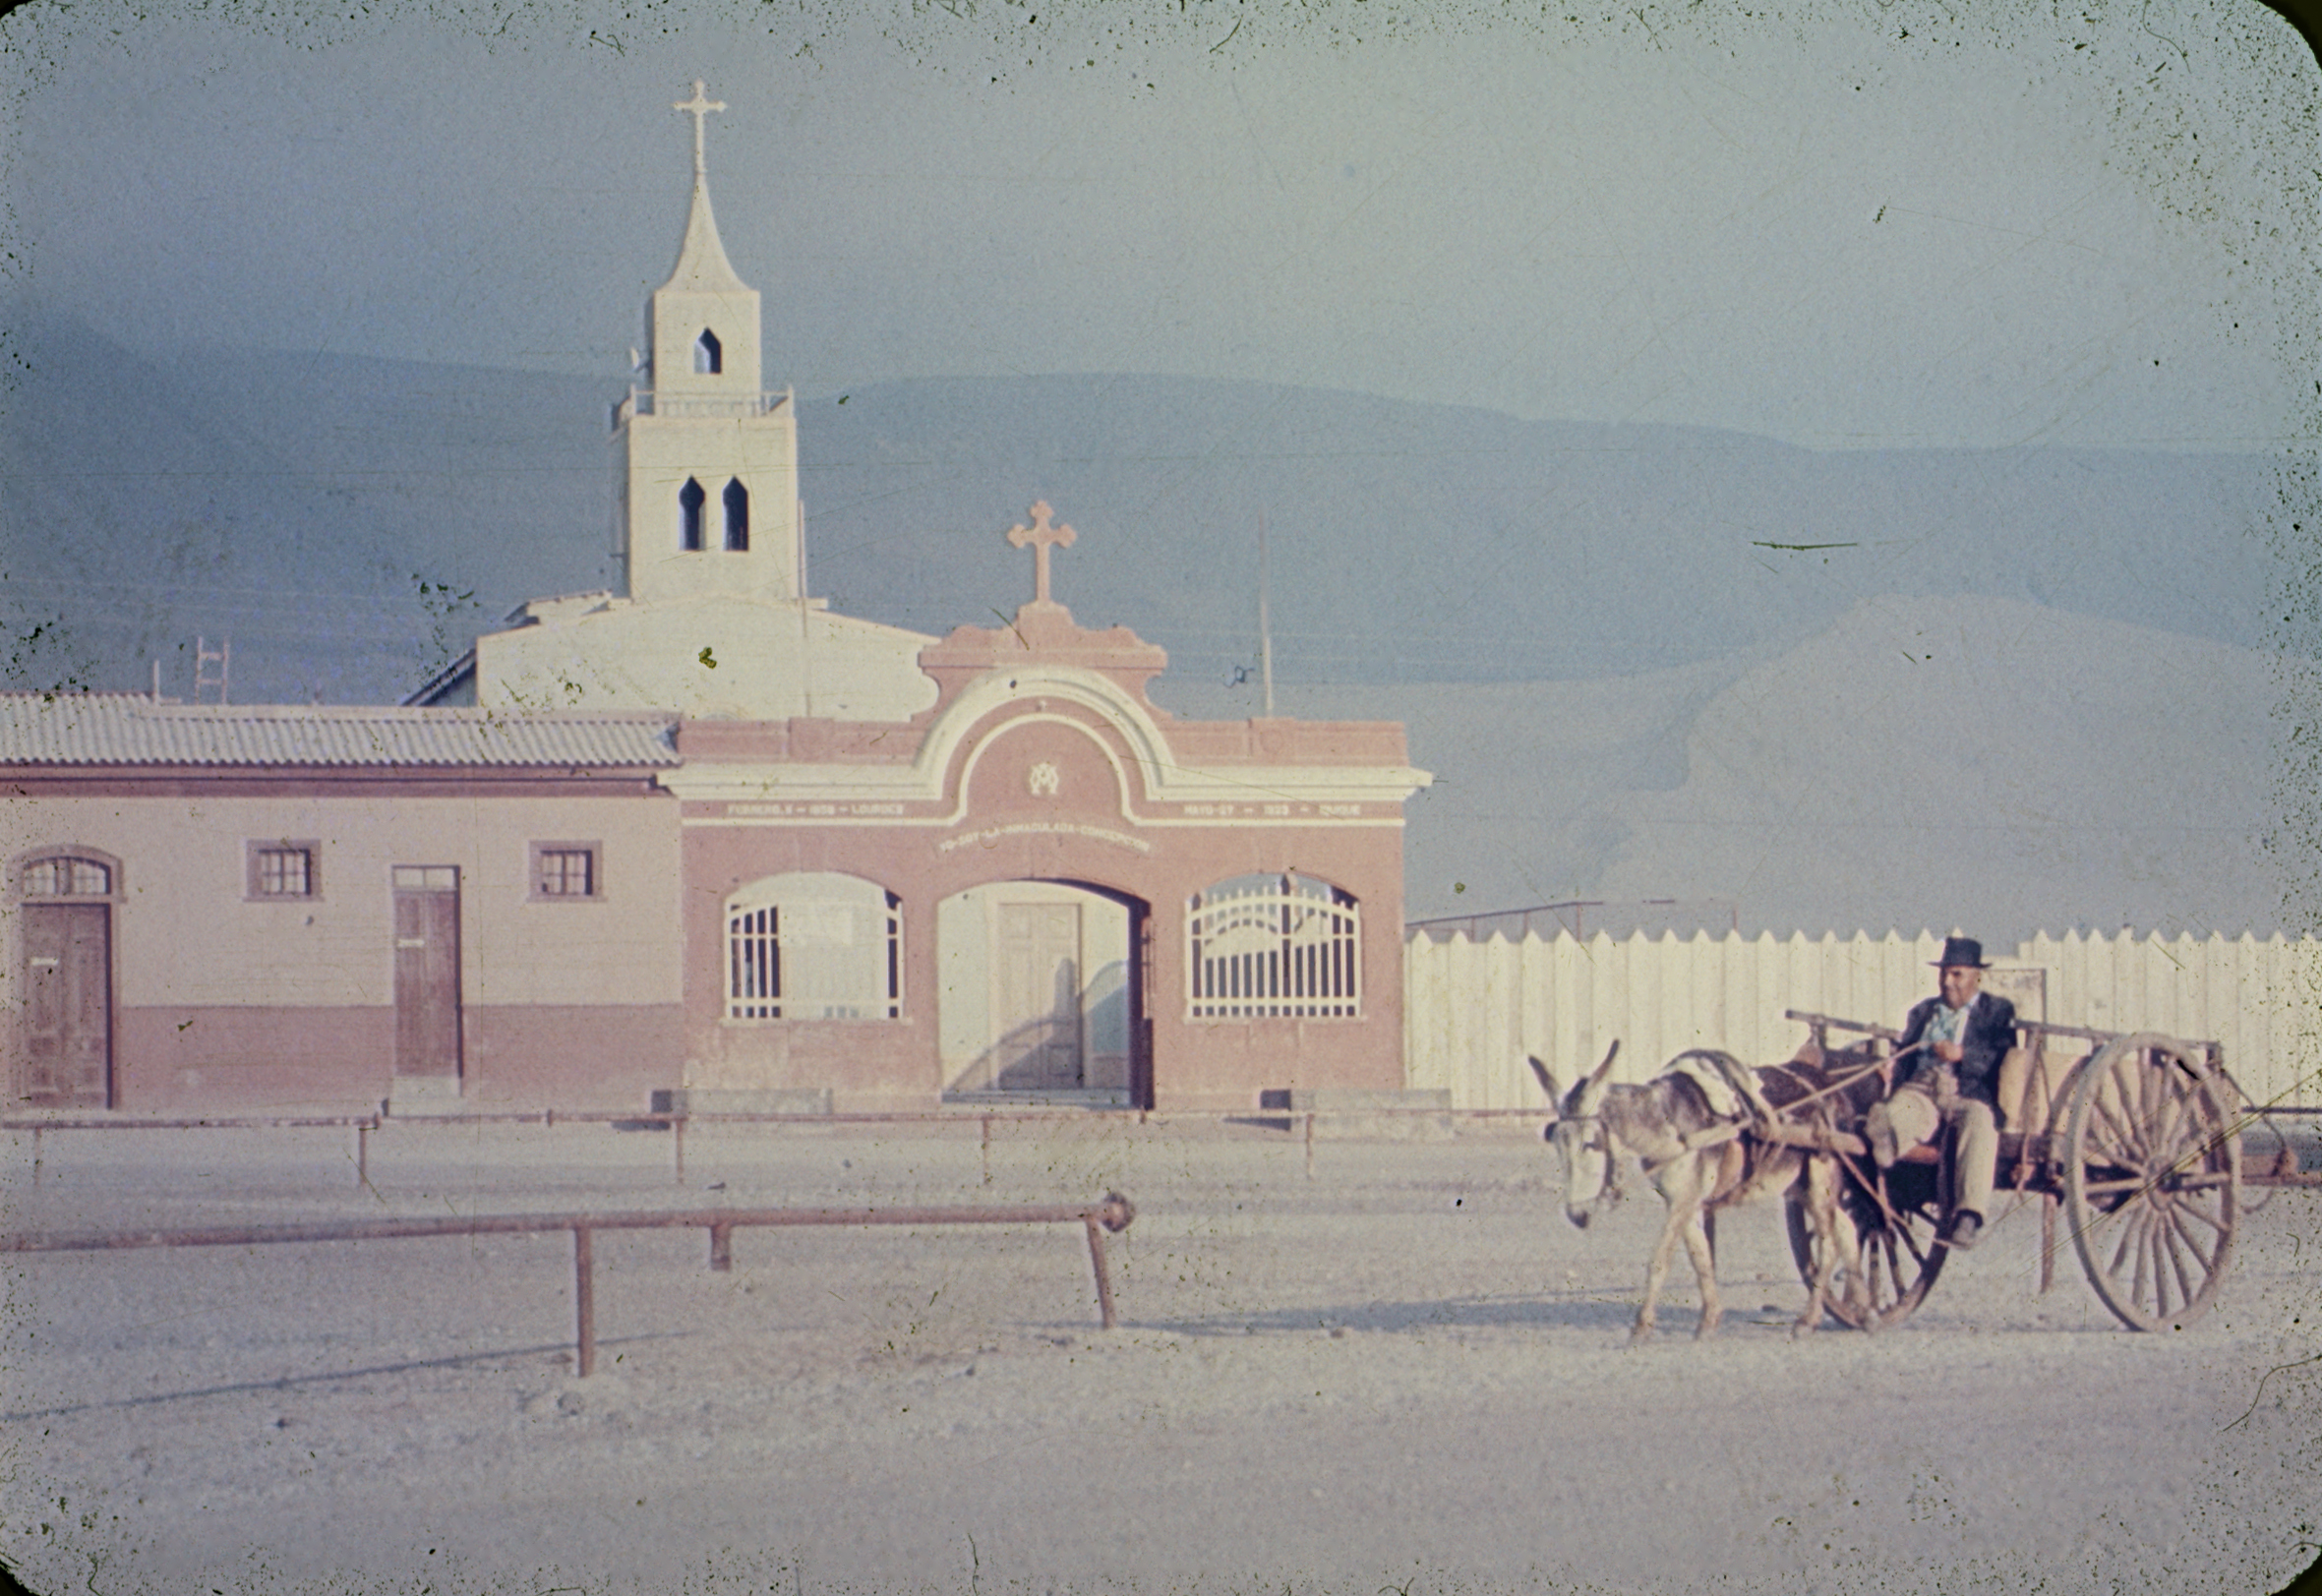 Enterreno - Fotos históricas de chile - fotos antiguas de Chile - Gruta de Lourdes de Iquique, 1960s